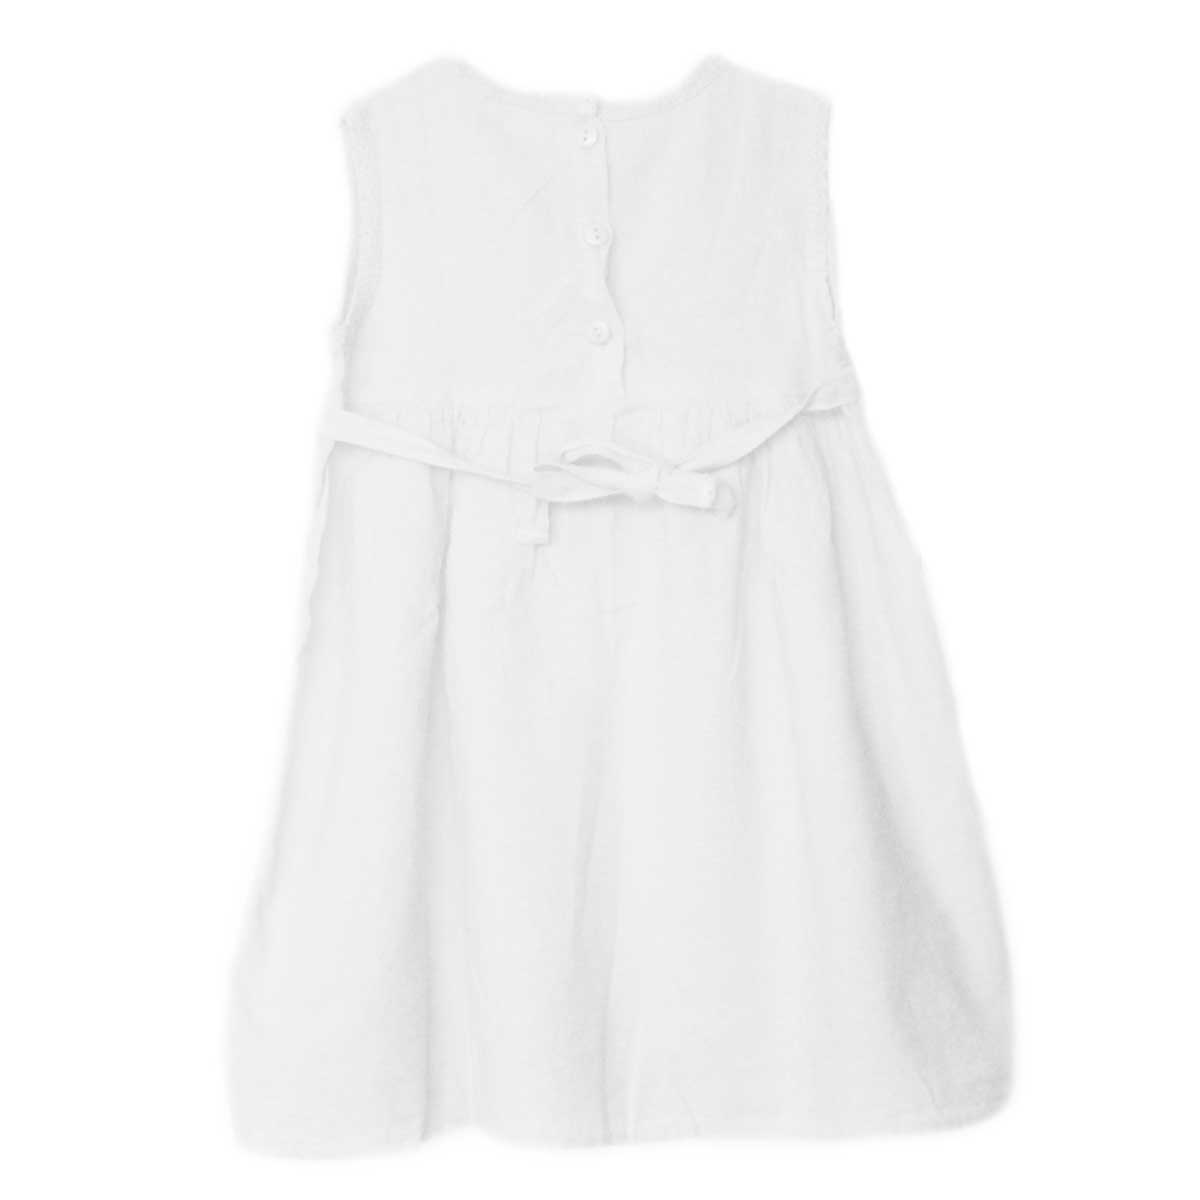 Inka-Products-Robe sans manches fille-En Coton Broderie Péruvienne-2